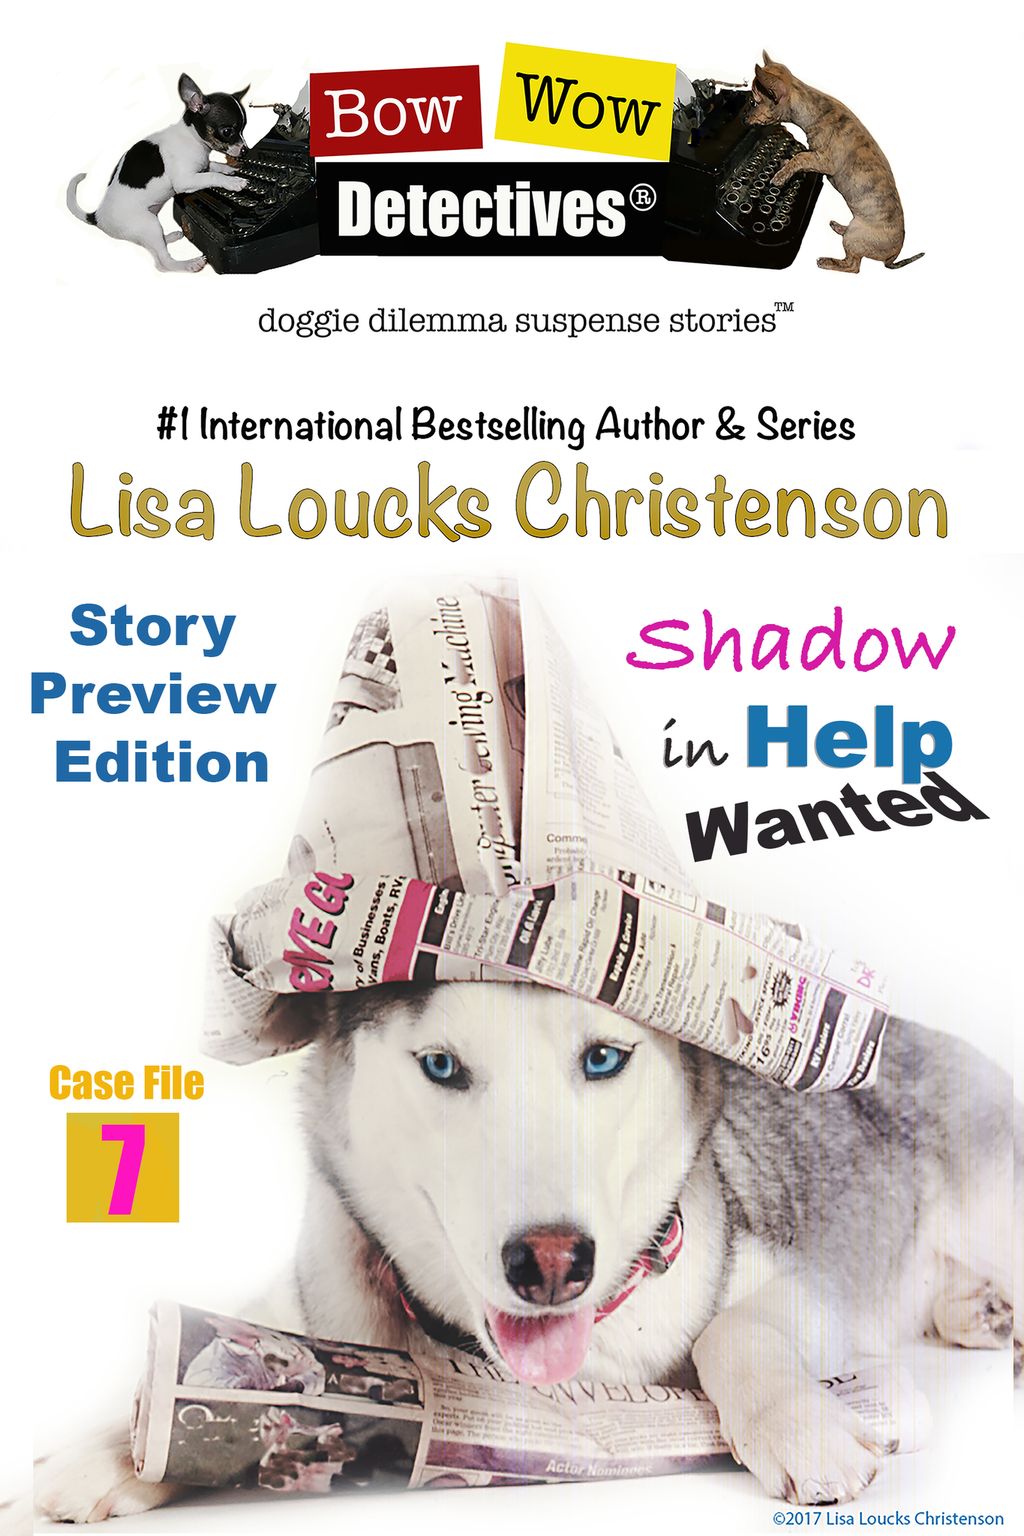 Shadow in Help Wanted, Case File 7, Bow Wow Detectives® | Story Preview Edition - Ebook